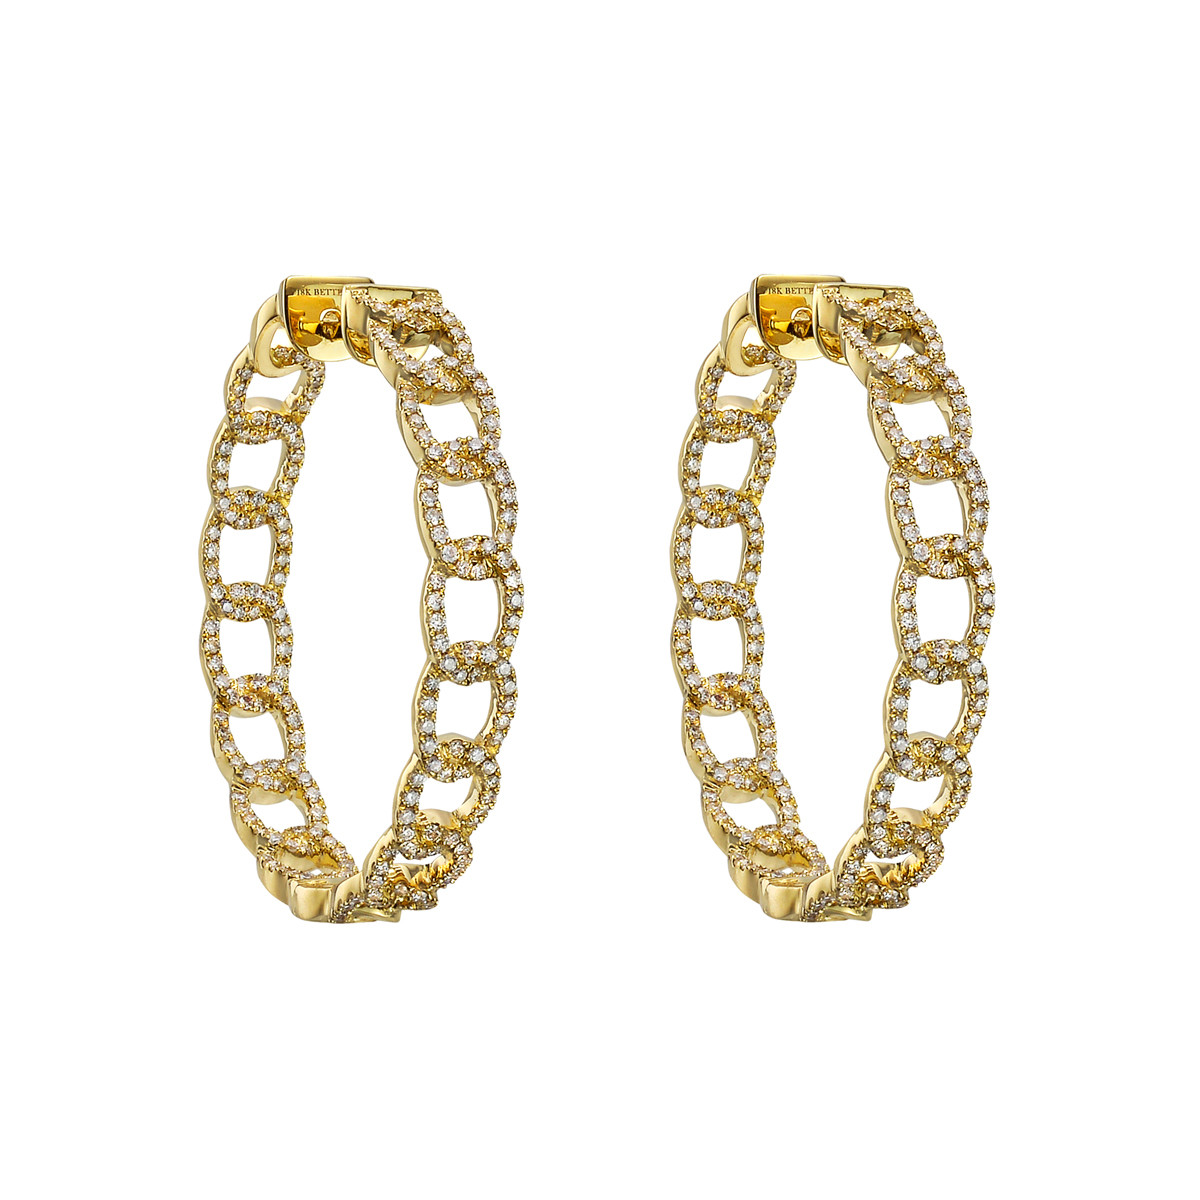 Medium 18k Yellow Gold & Diamond Curb Link Hoop Earrings